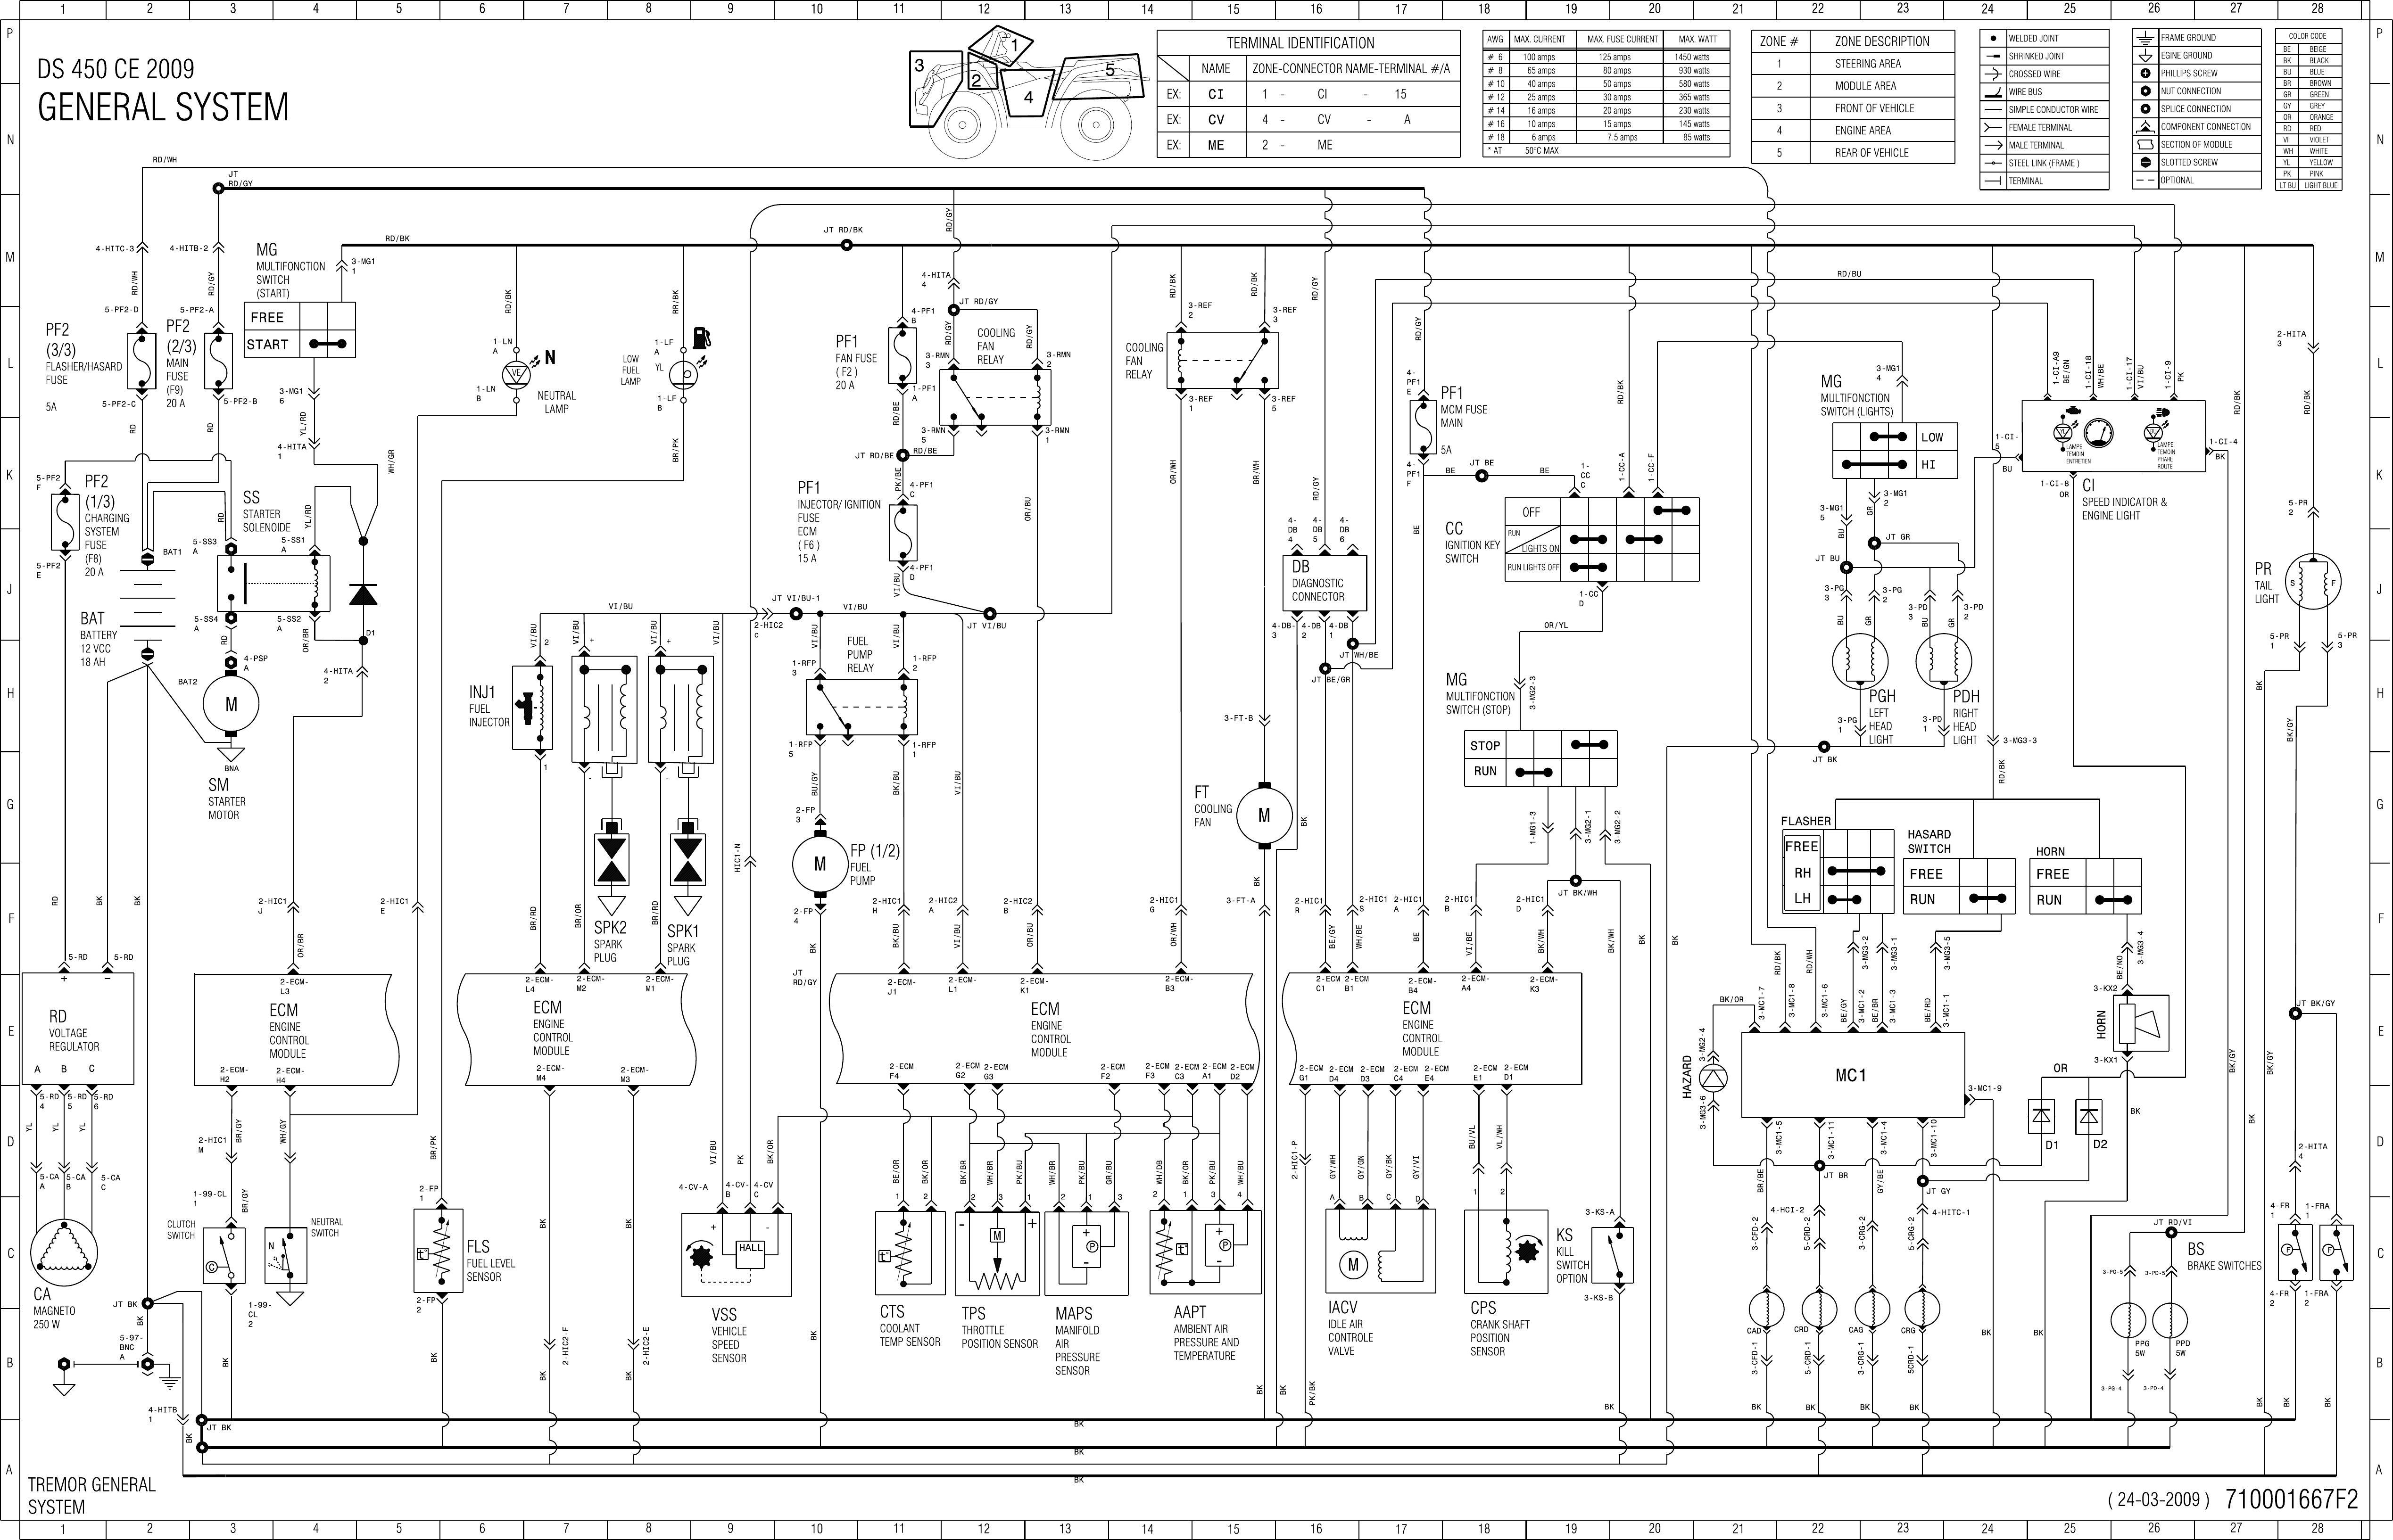 2008 Can Am Ds 250 Wiring Diagram - Clarion Radio Wiring for Wiring Diagram  Schematics | 2008 Can Am Ds 250 Wiring Diagram |  | Wiring Diagram Schematics